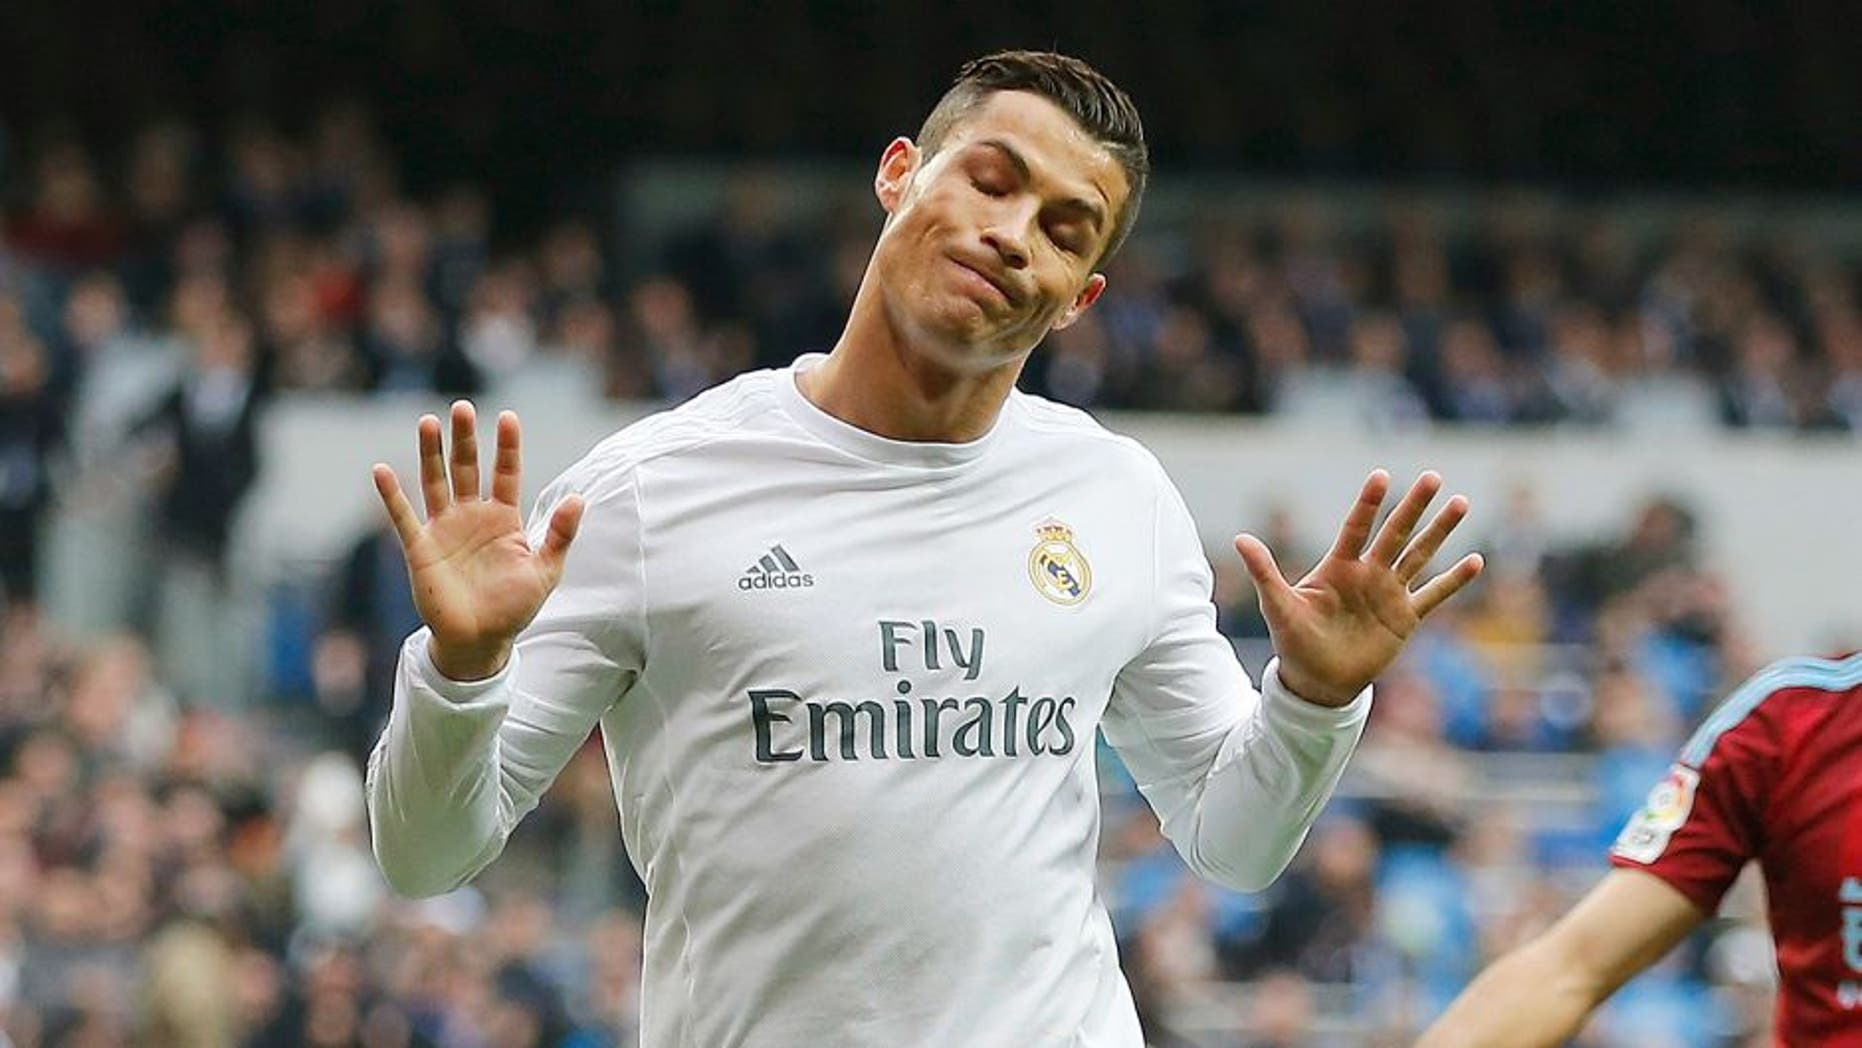 MADRID, SPAIN - DECEMBER 30: Cristiano Ronaldo of Real Madrid celebrates after scoring the opening goal during the La Liga match between Real Madrid CF and Real Sociedad at Estadio Santiago Bernabeu on December 30, 2015 in Madrid, Spain. (Photo by Angel Martinez/Real Madrid via Getty Images)